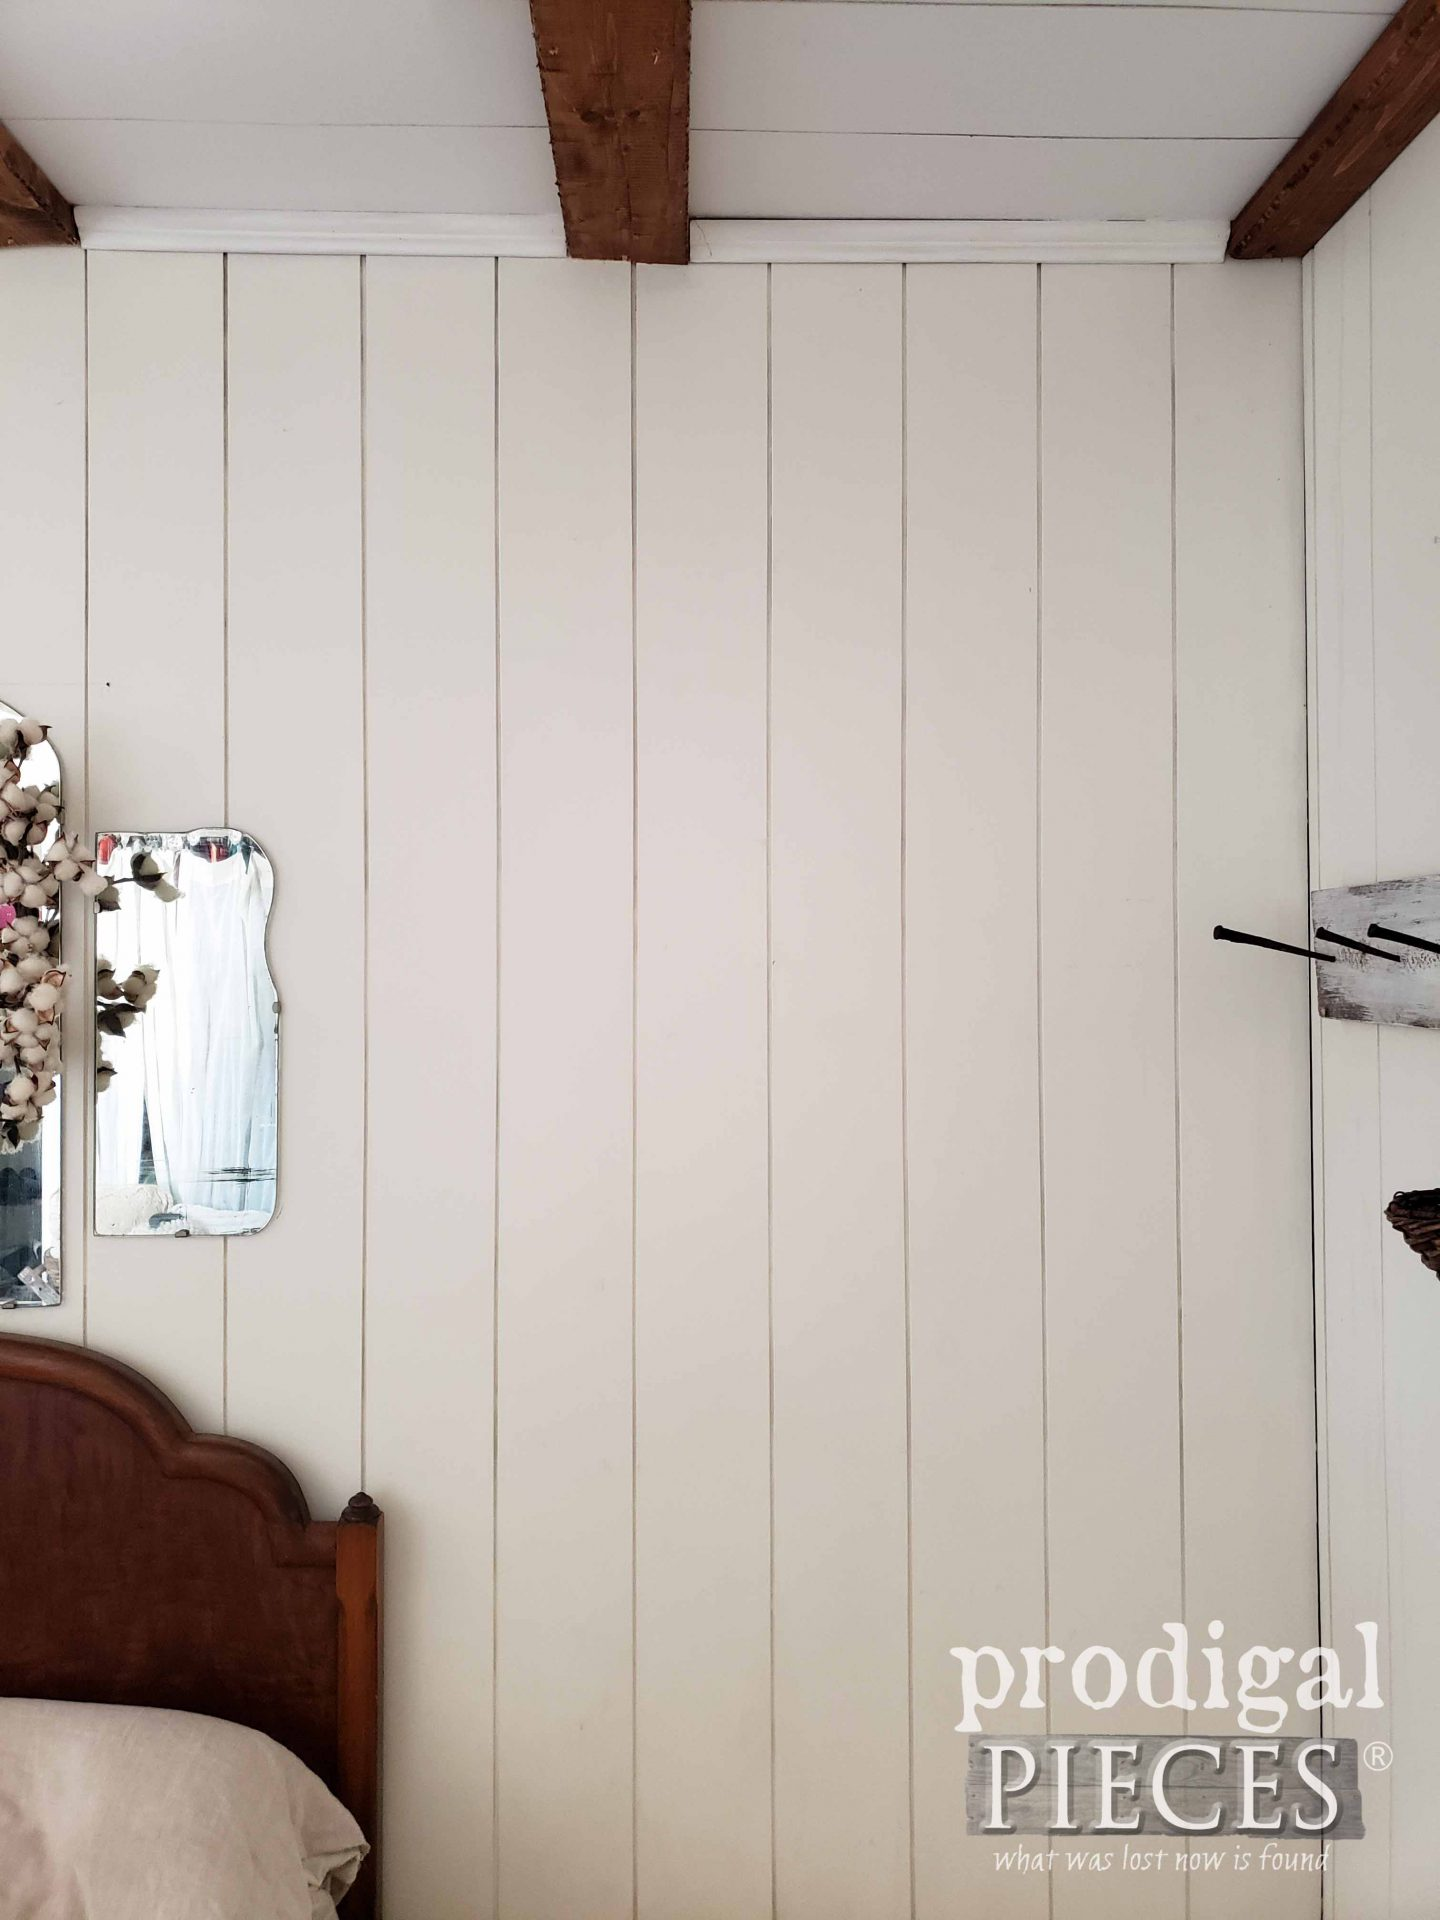 Blank Bedroom Wall Before adding Architectural Salvage | prodigalpieces.com